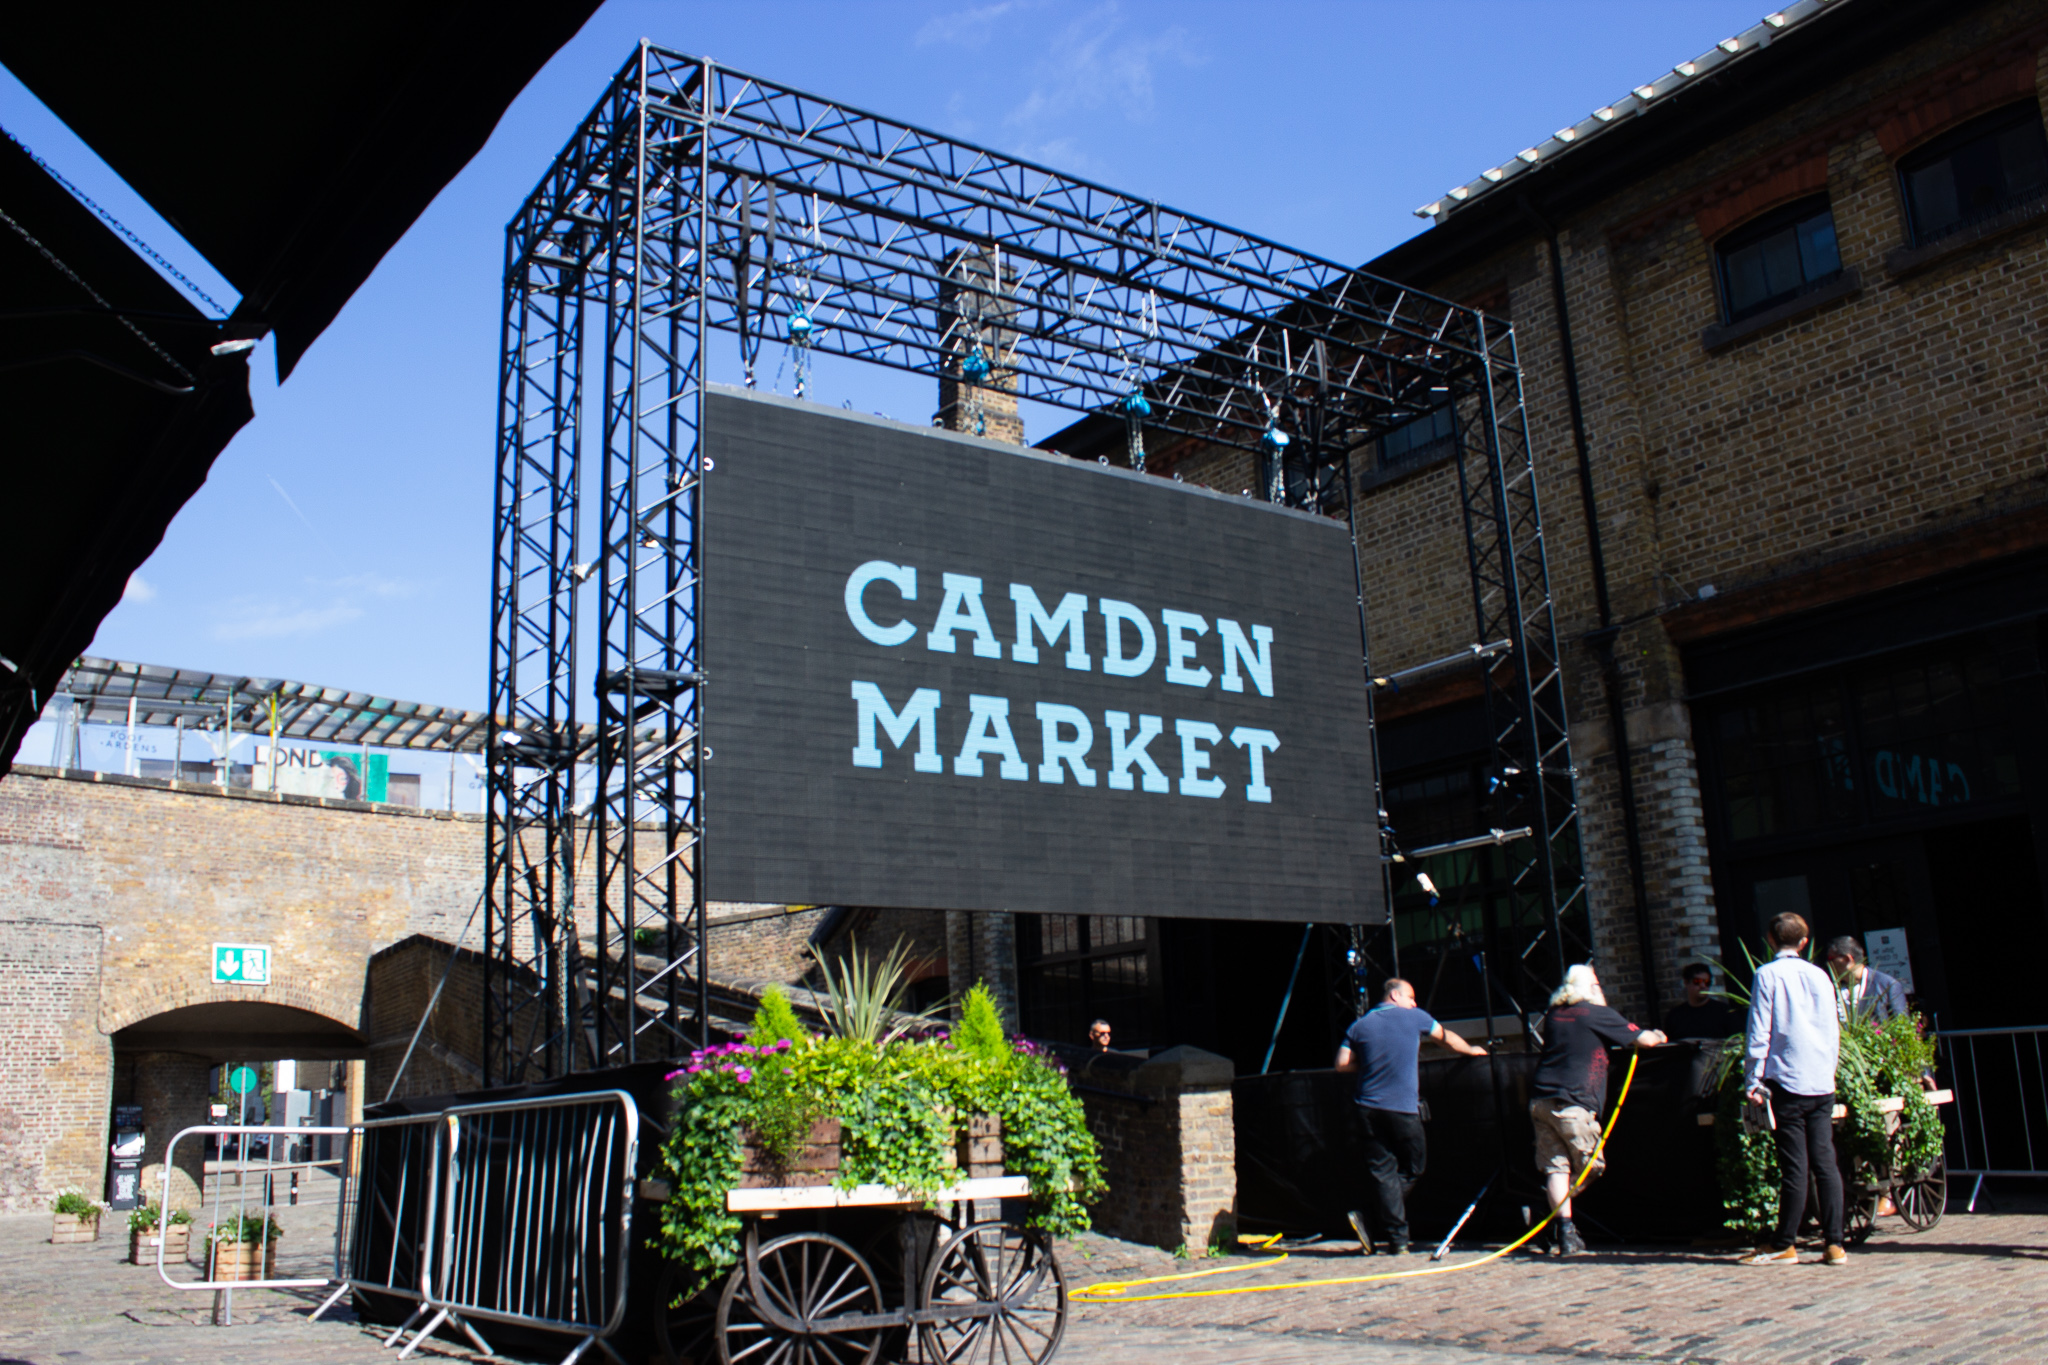 LED Screen In Camden Market